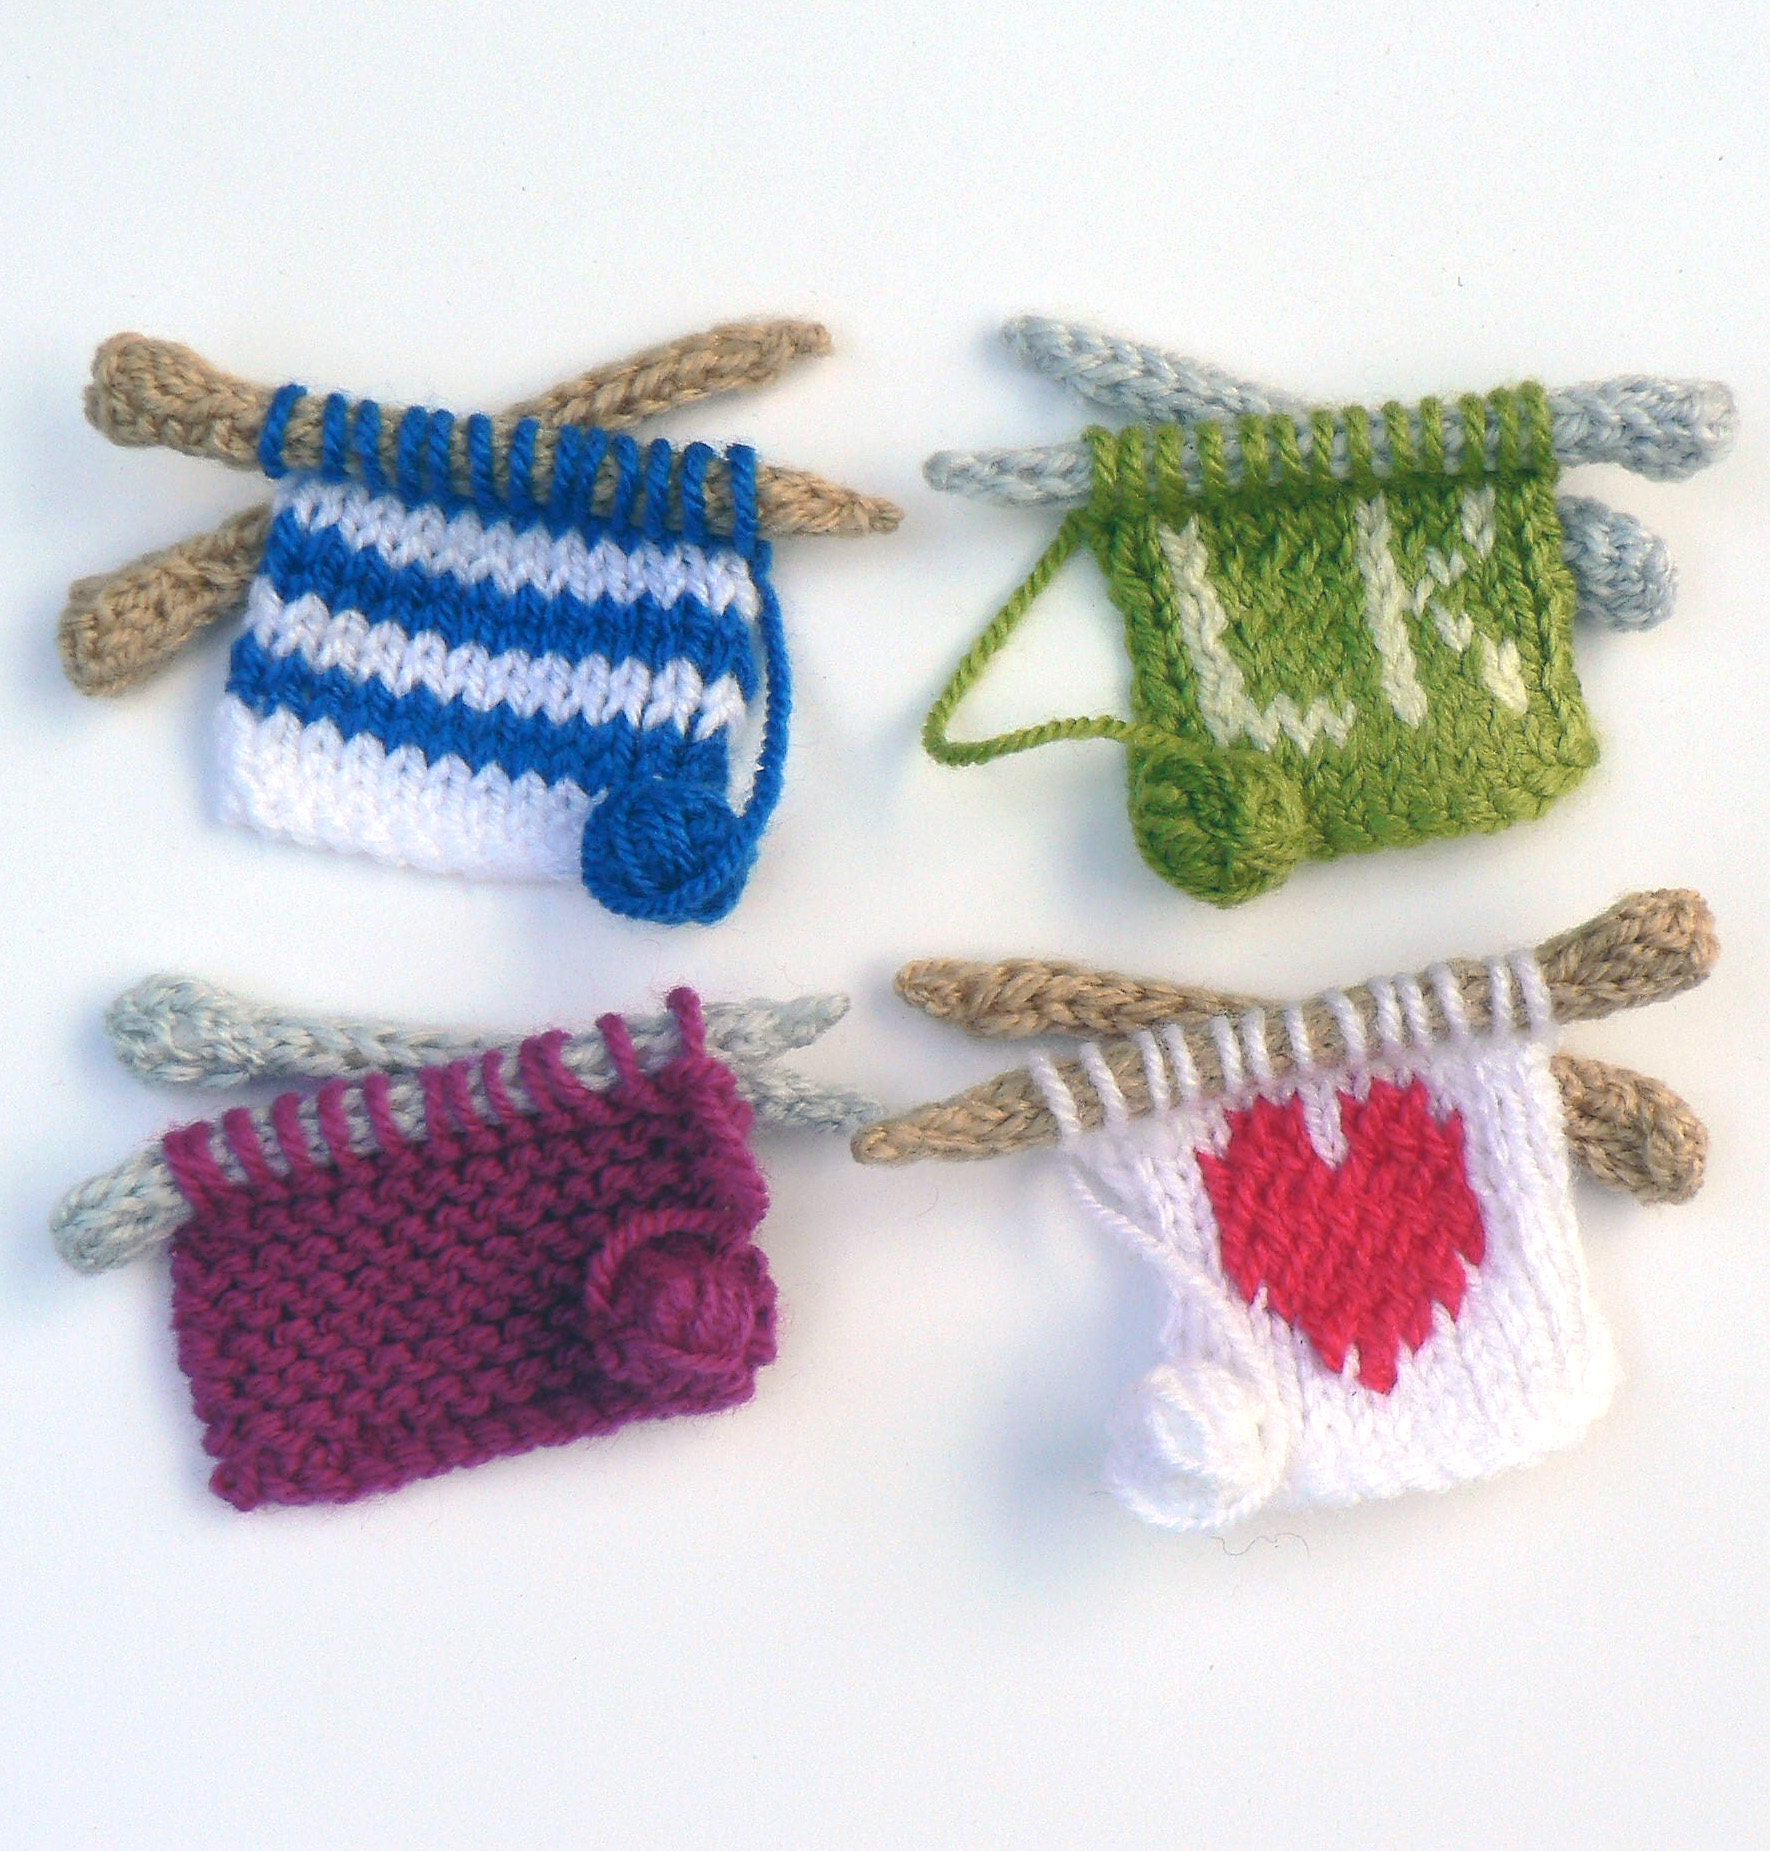 Knitting Pattern for Knitting Themed Pins